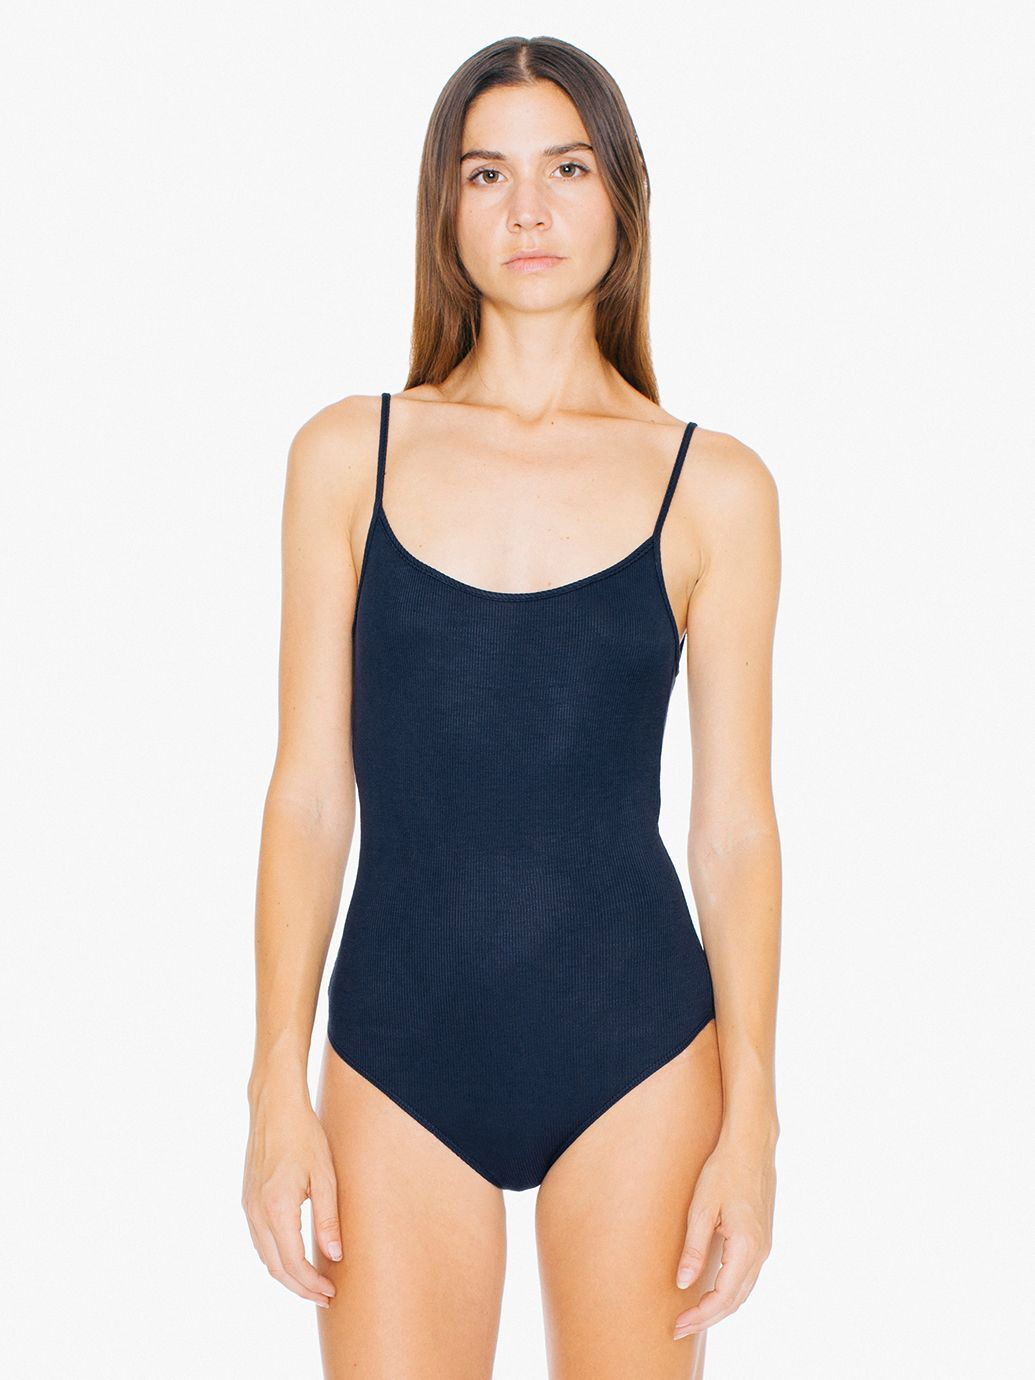 American Apparel 2x2 Rib U Back Bodysuit